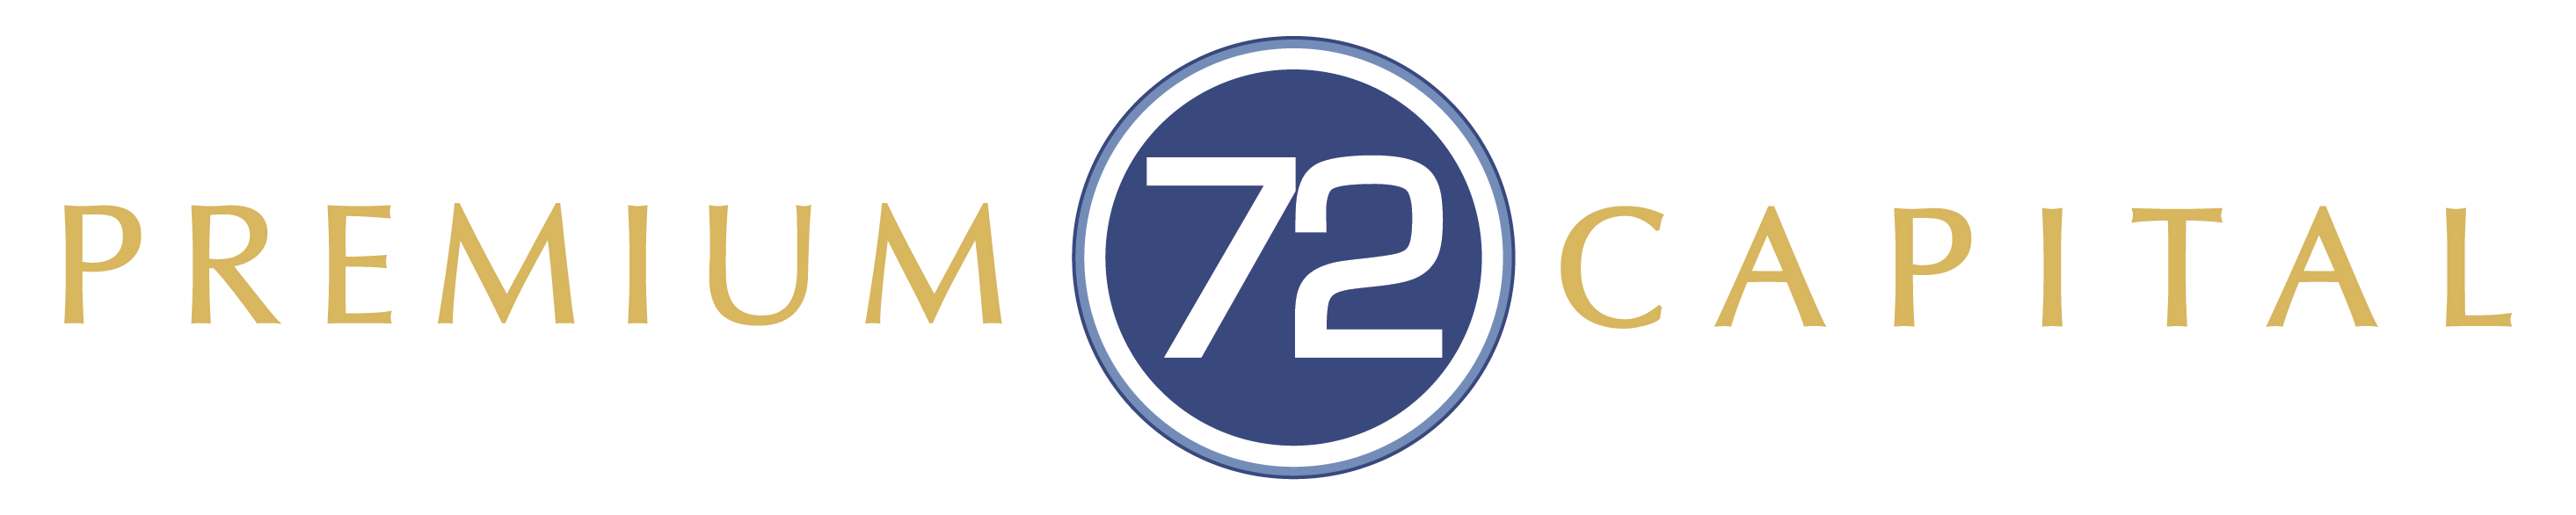 Premium-72-Capital-Logo.png